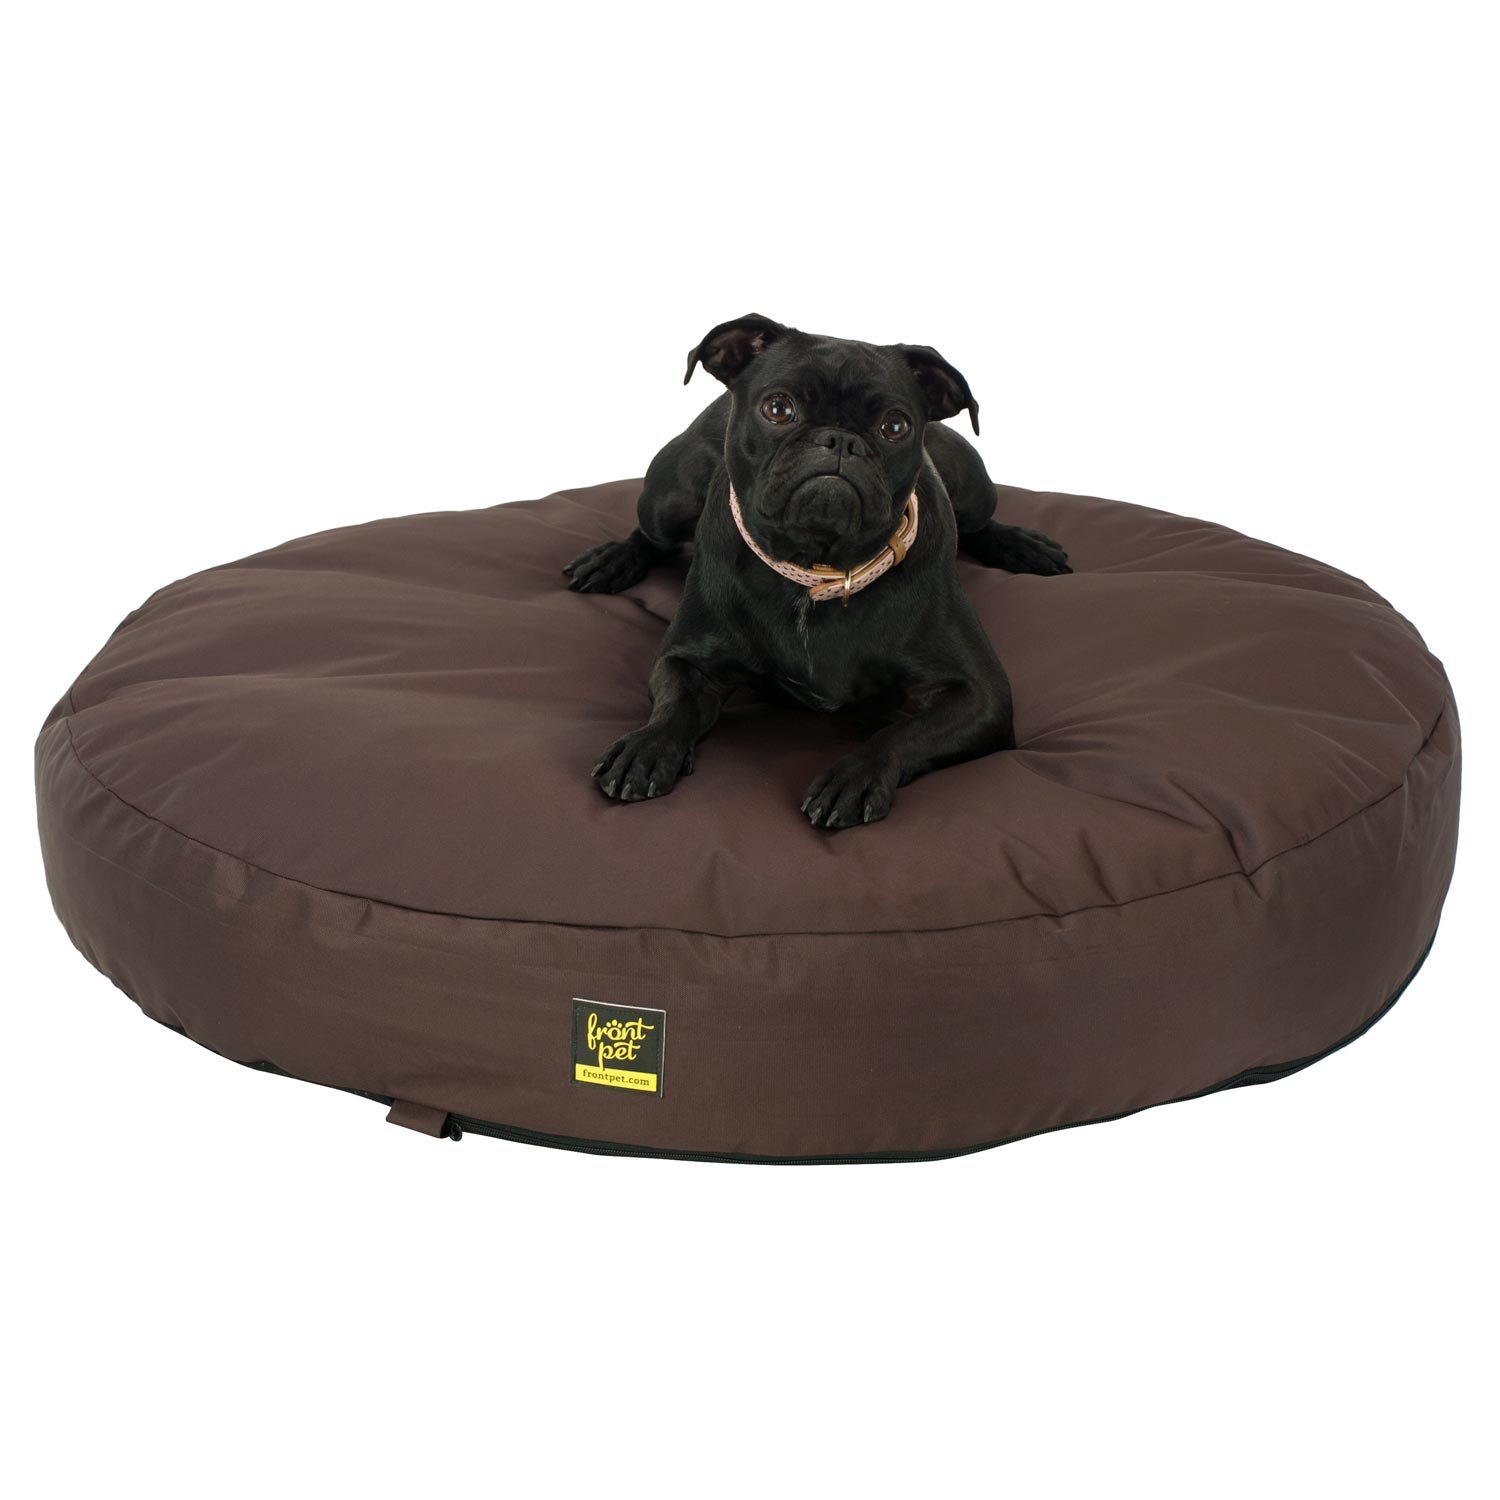 the pillows supplies dog indestructible pet gray depot b furniture premium n bed wildlife medium home outdoors beds